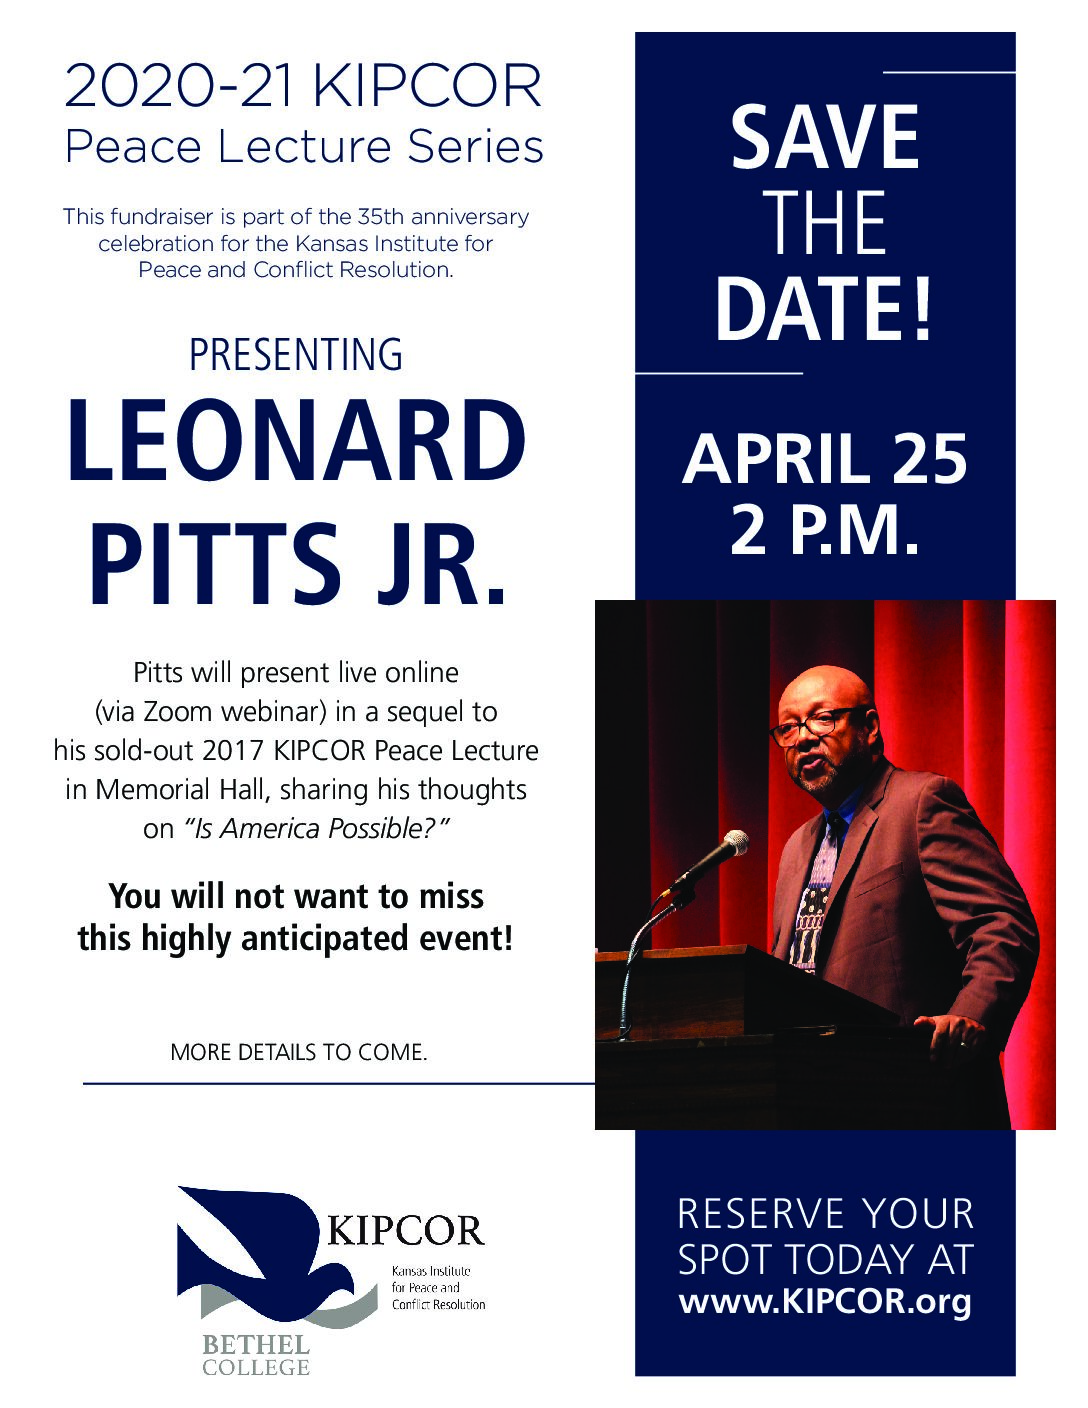 Click here for new information about Leonard Pitts Jr. Peace Lecture!